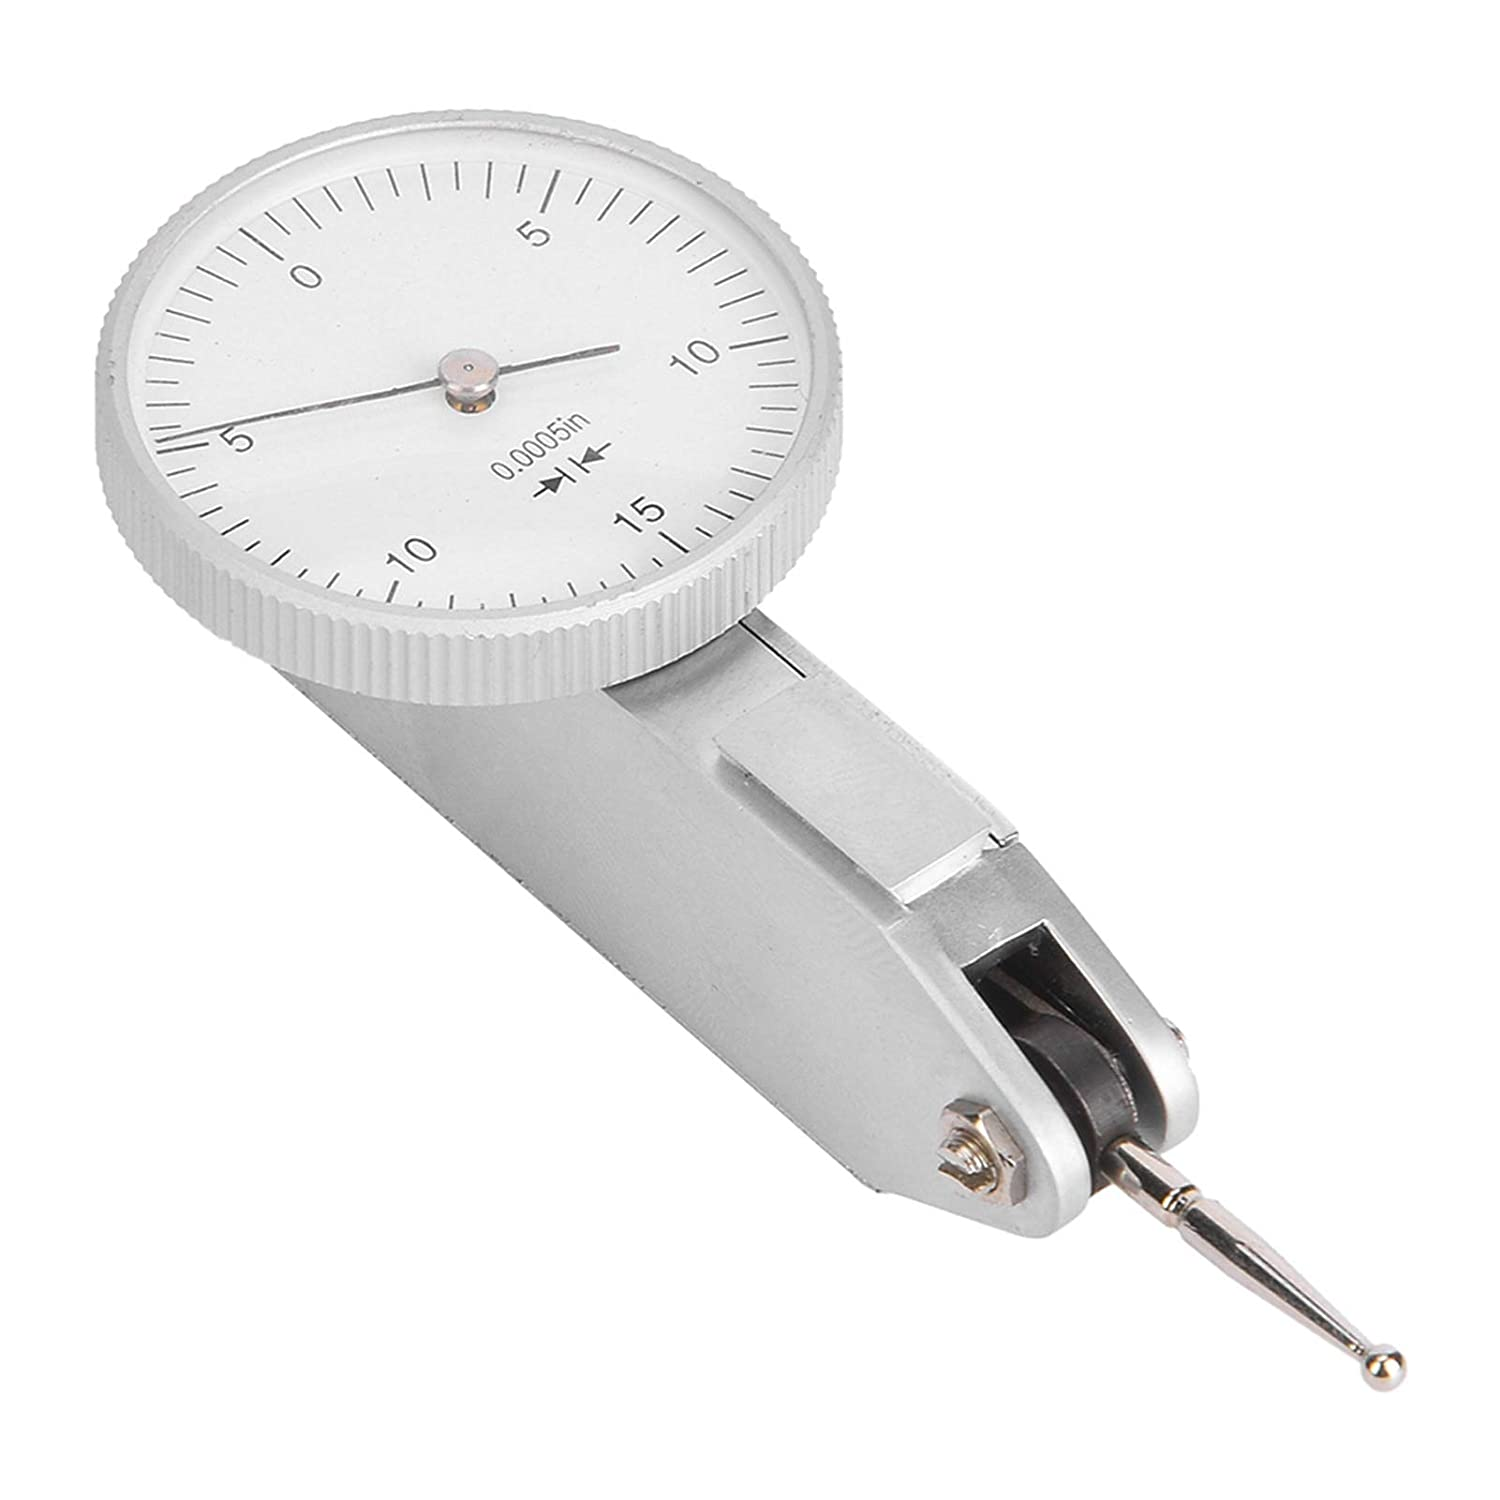 Dial Test Indicator Precise At the price Stainless Steel High quality new